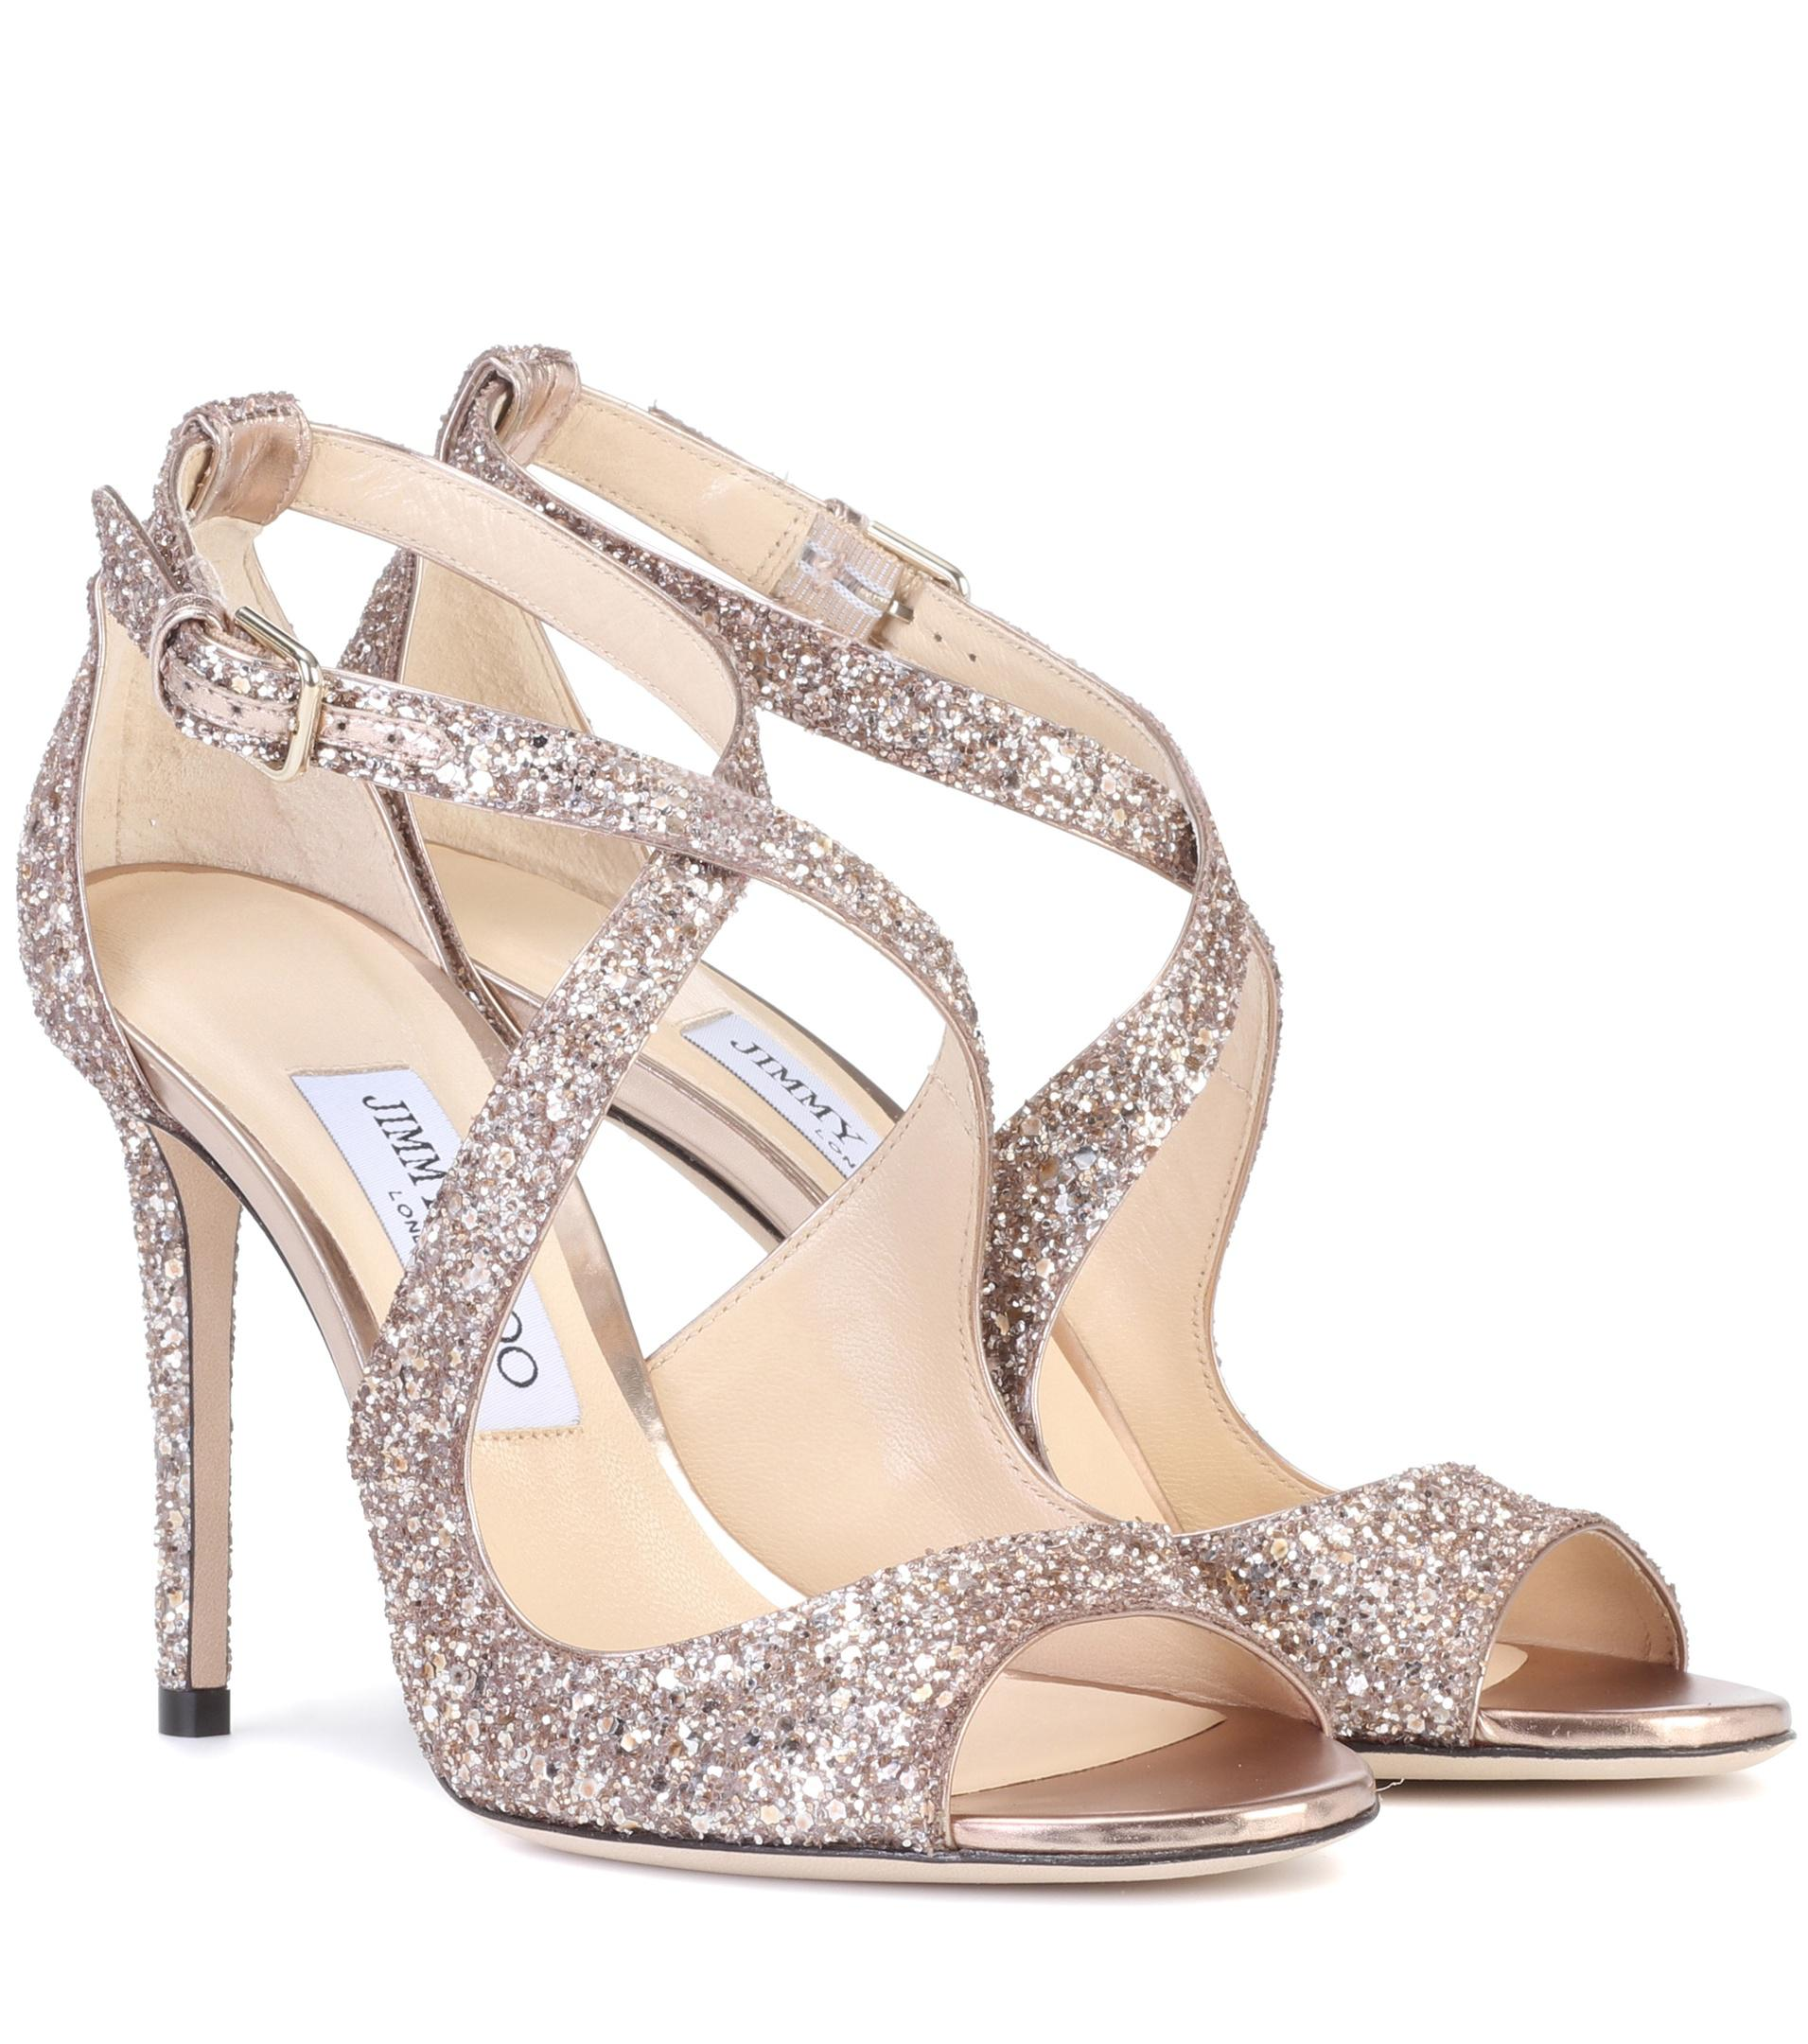 Glittered Emily sandal Jimmy Choo London clbS6T